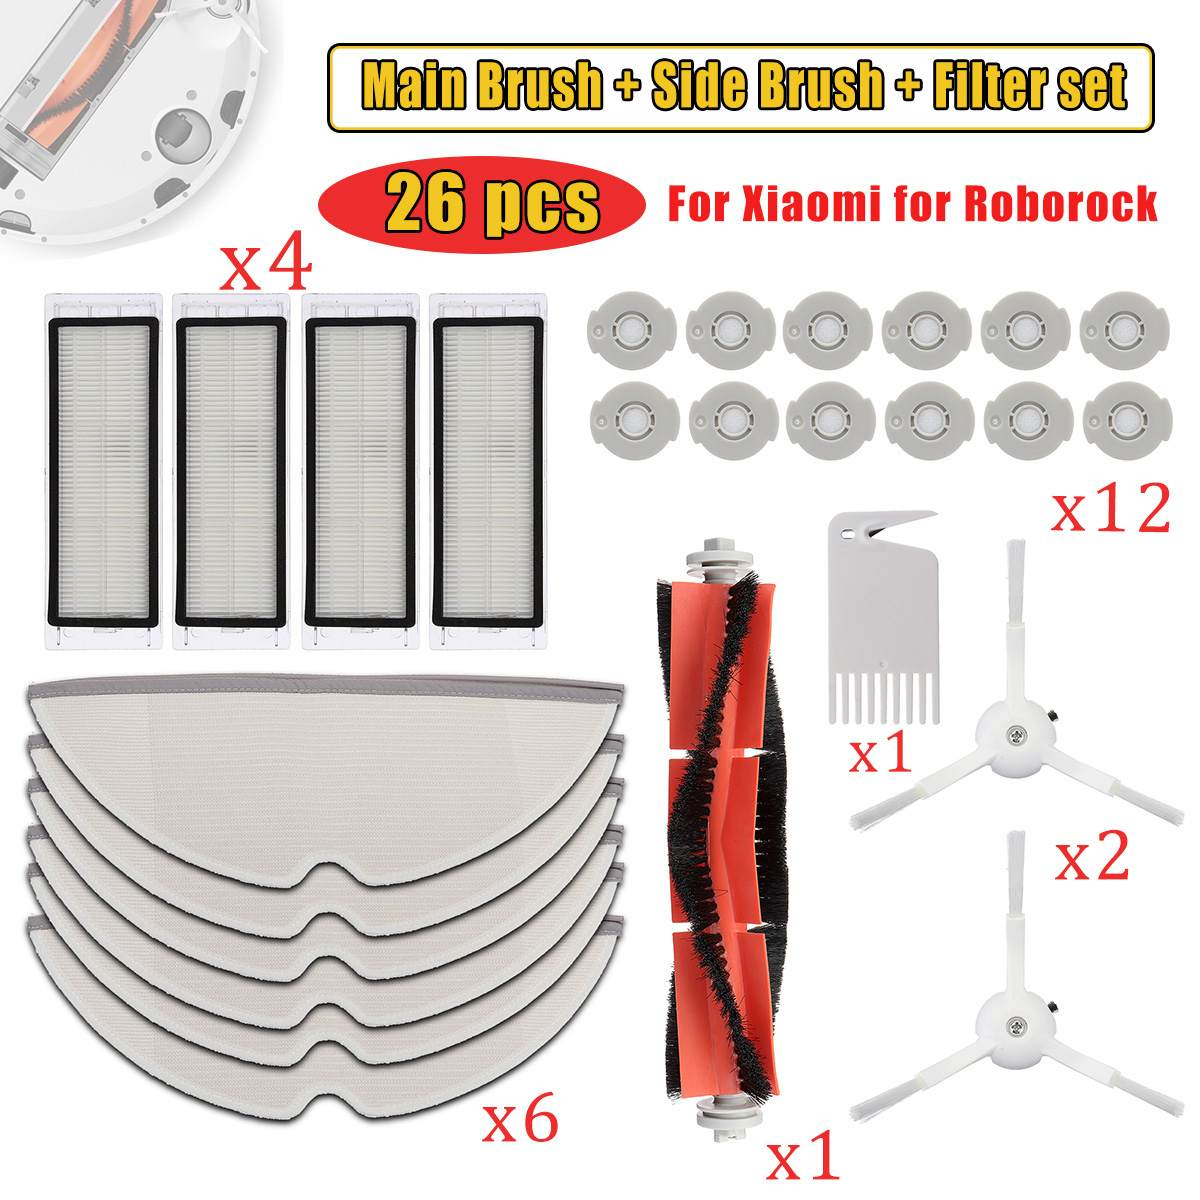 For Roborock S50 S51 S55 for Xiaomi MI Robot Vacuum Cleaner Spare Parts Kits Filter Main Brush Side Brush Mop ClothsFor Roborock S50 S51 S55 for Xiaomi MI Robot Vacuum Cleaner Spare Parts Kits Filter Main Brush Side Brush Mop Cloths